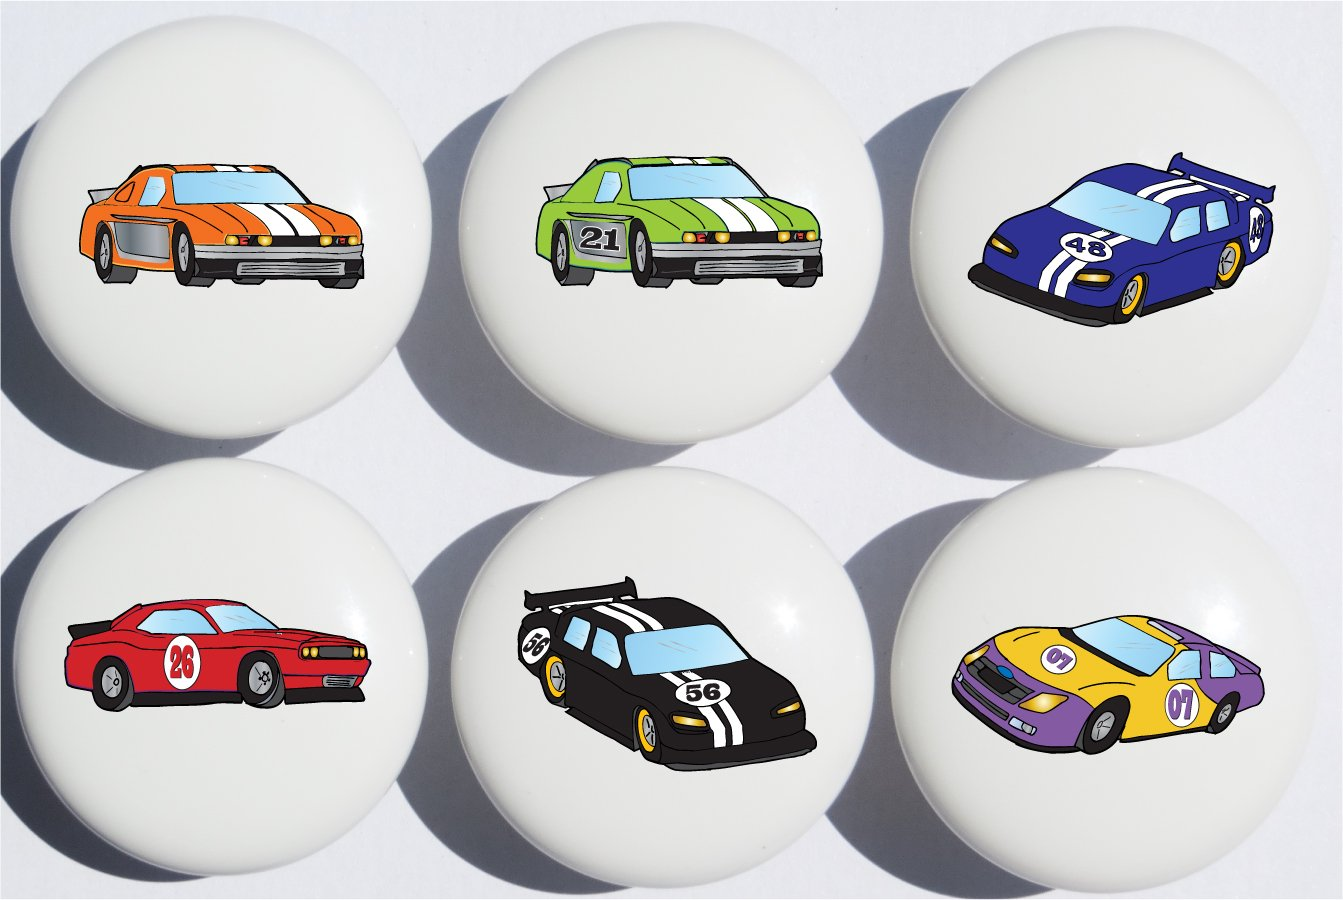 Stock Race Car Drawer Pulls / Race Car Childern's Nursery Decor Ceramic Drawer Knobs, 6 Set by Unknown